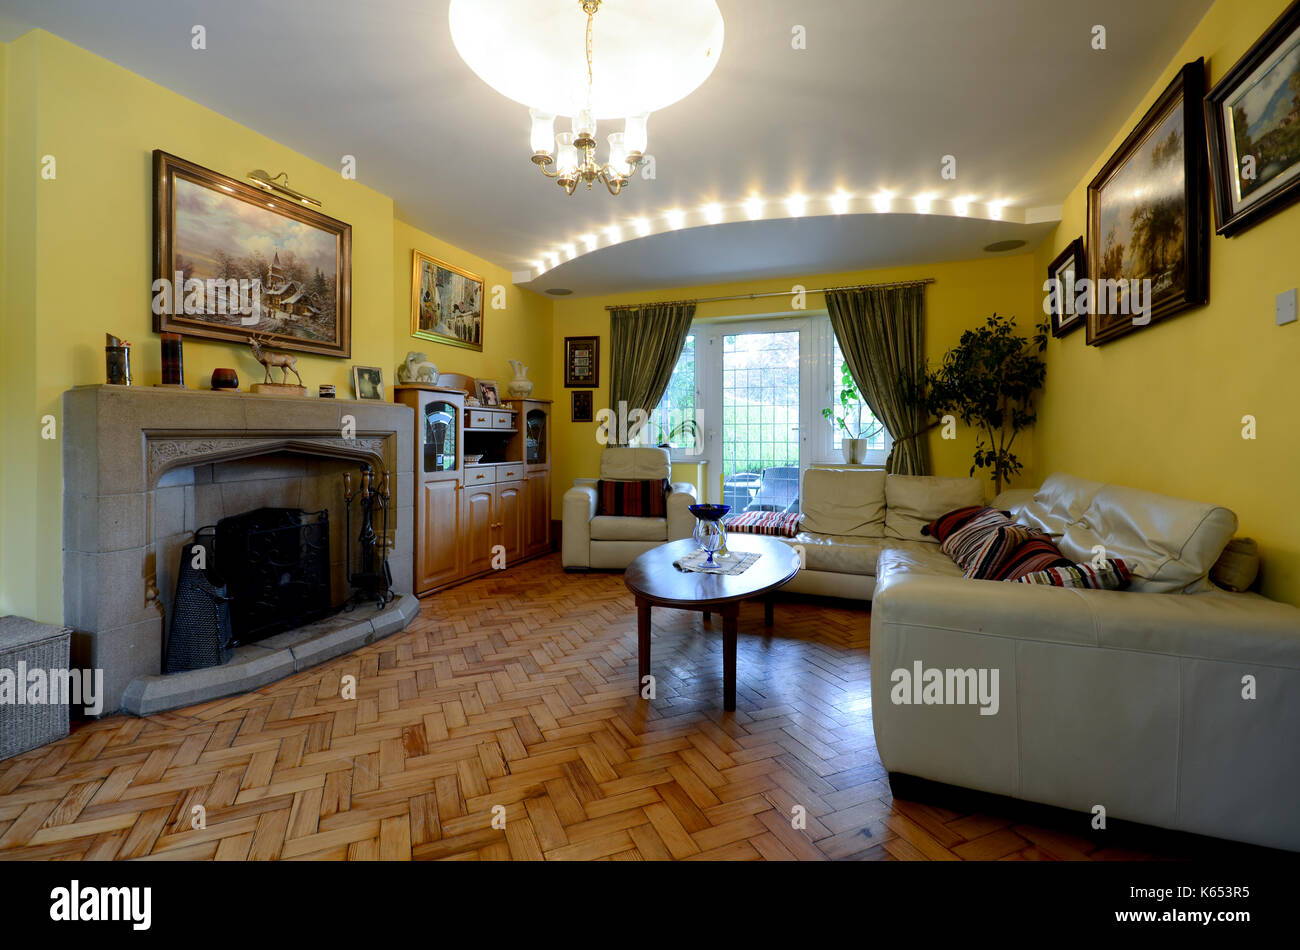 yellow living room with expensive led lights - Stock Image